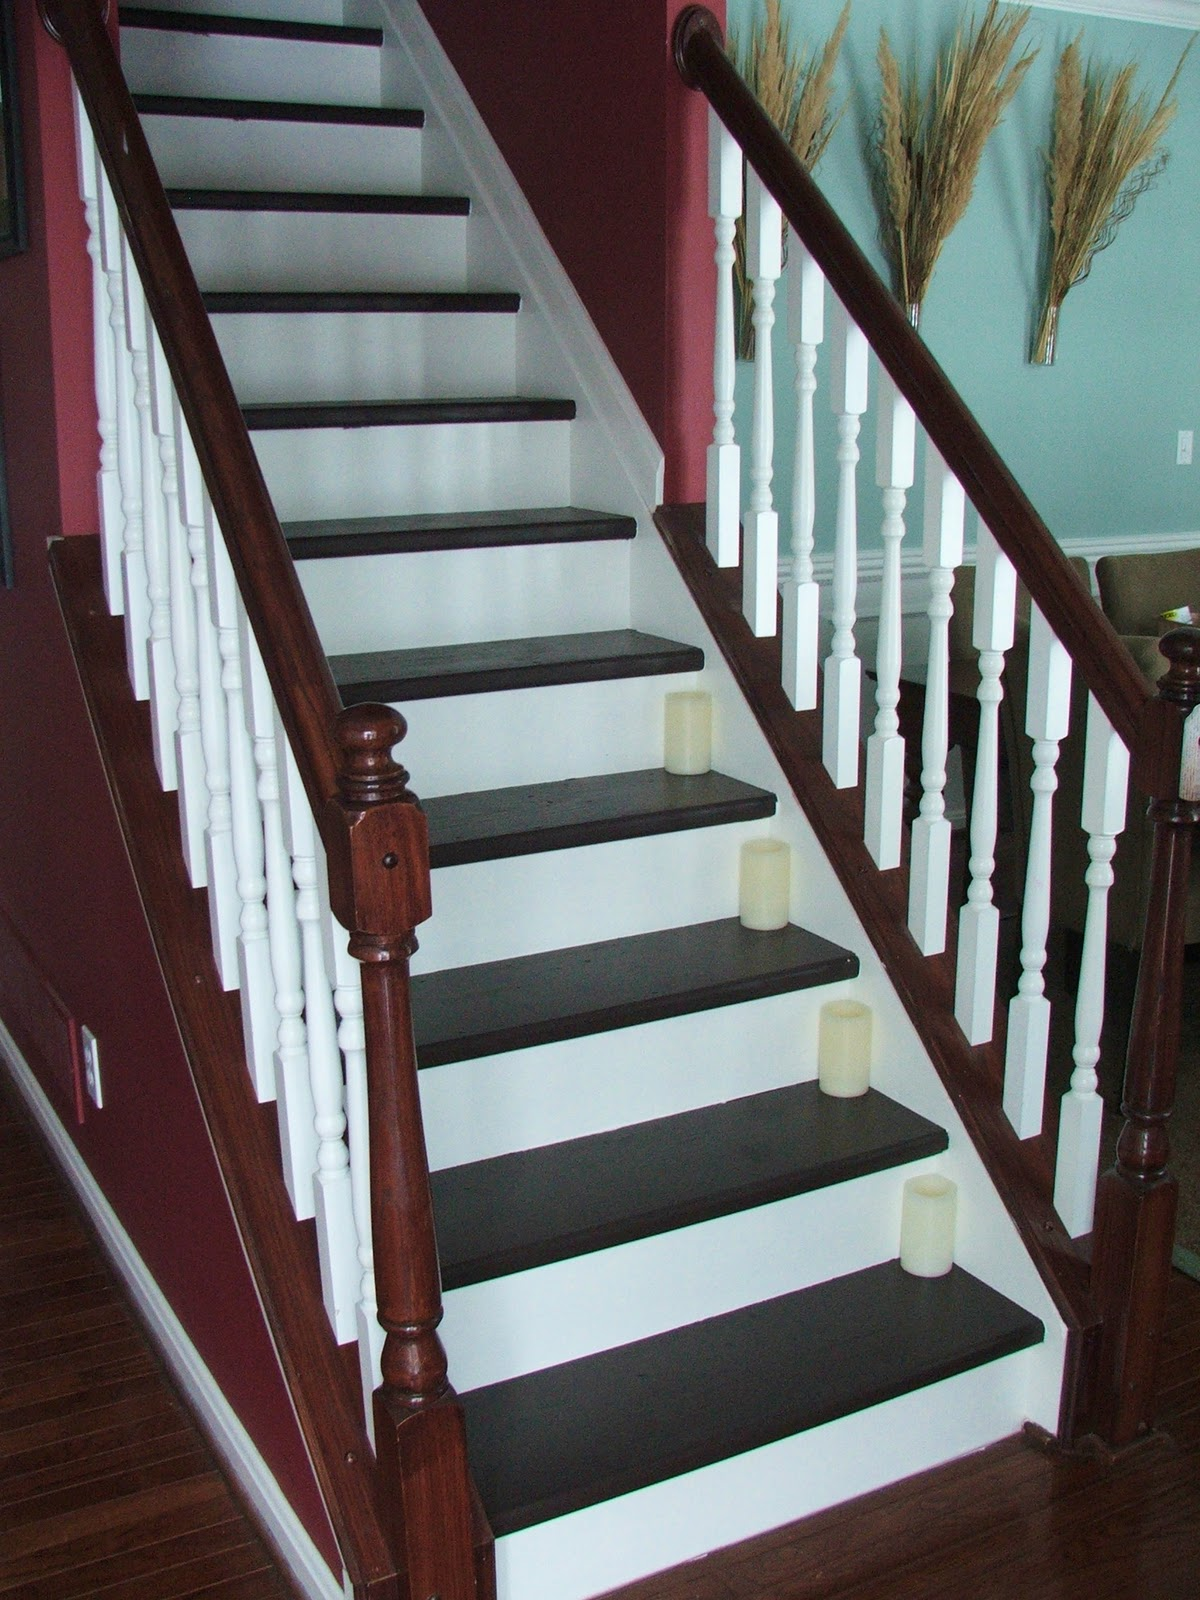 33 How To Update Your Staircase For Less Than $100, Carpet To Wooden, By